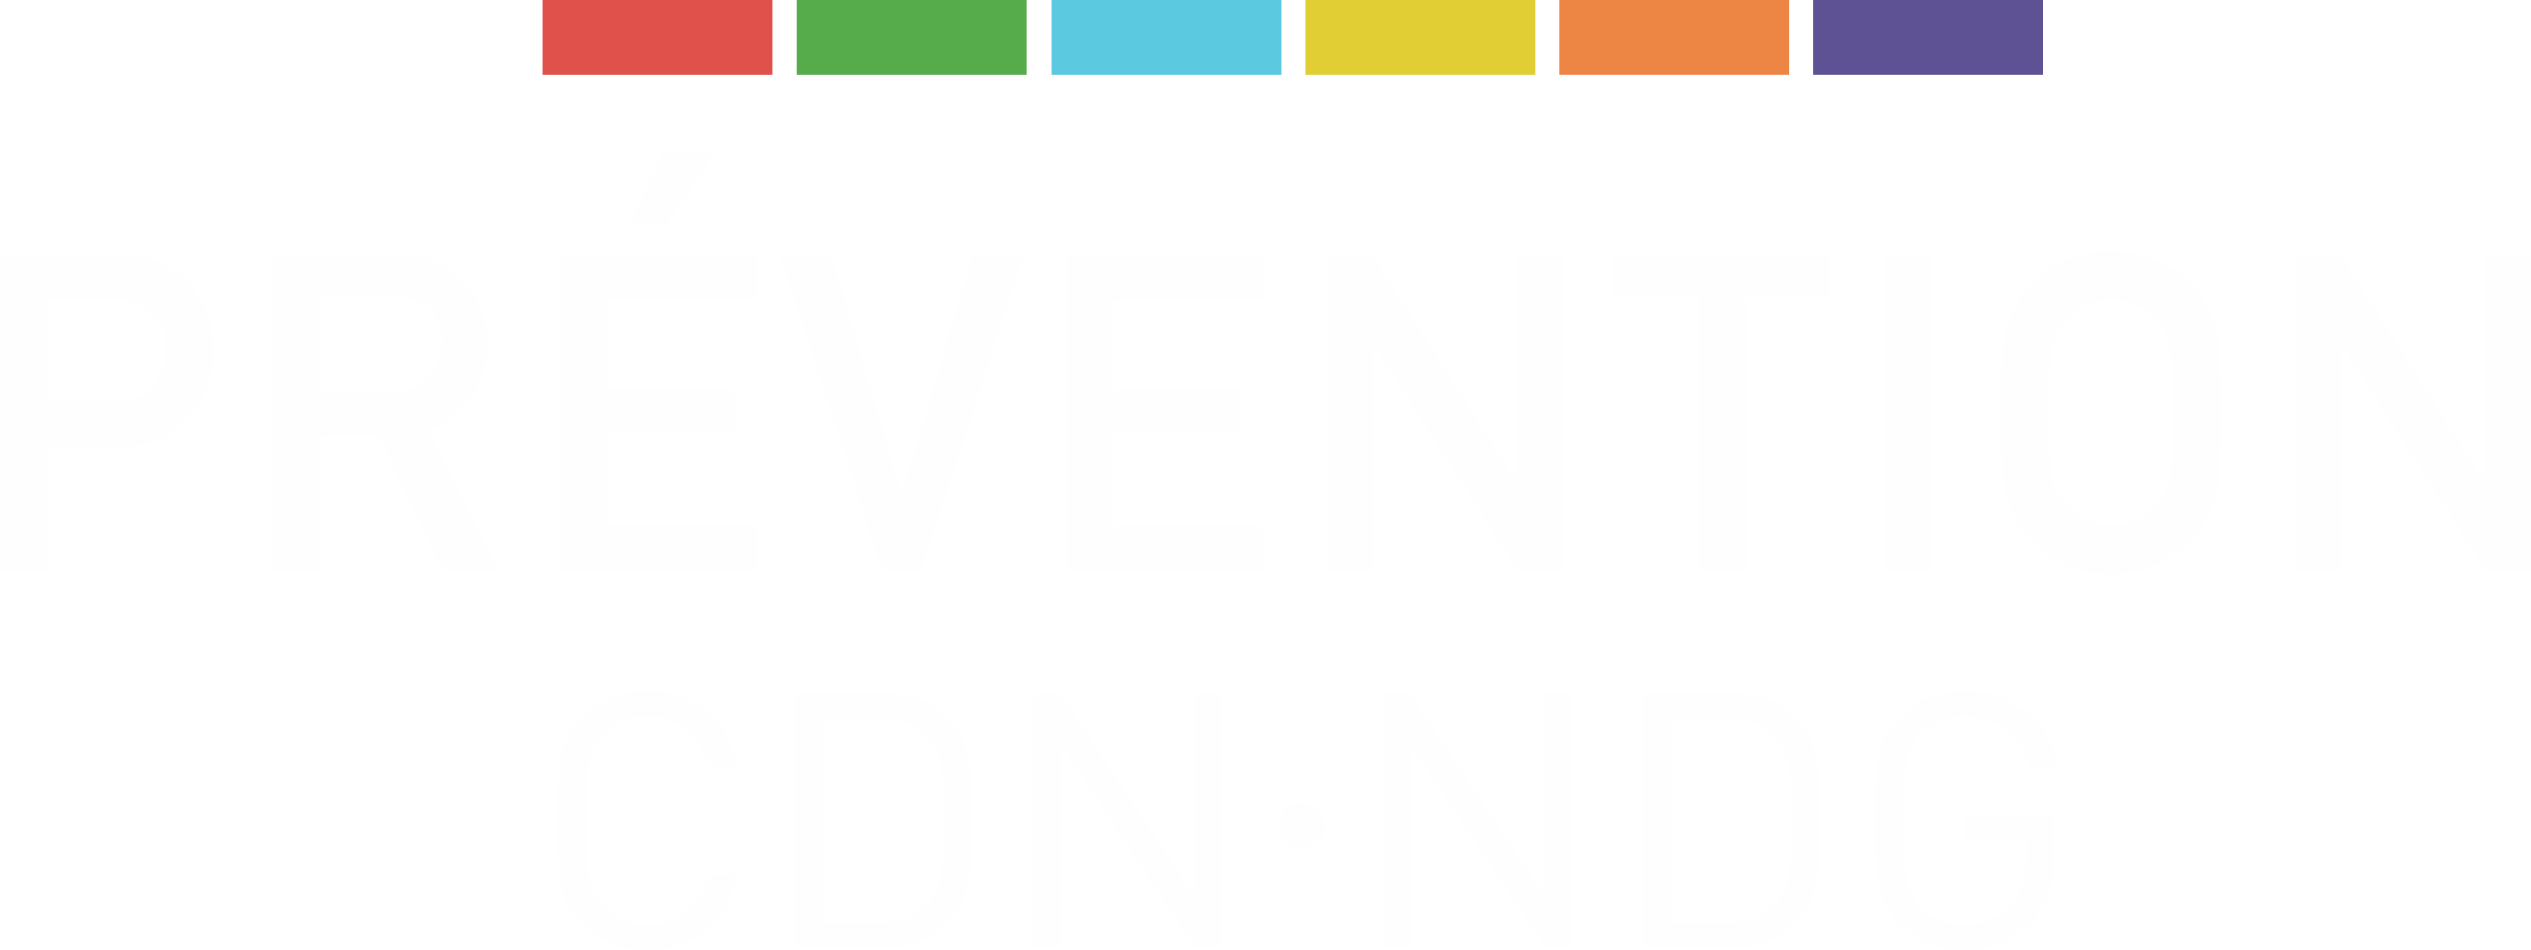 prevention cdn ndg light logo